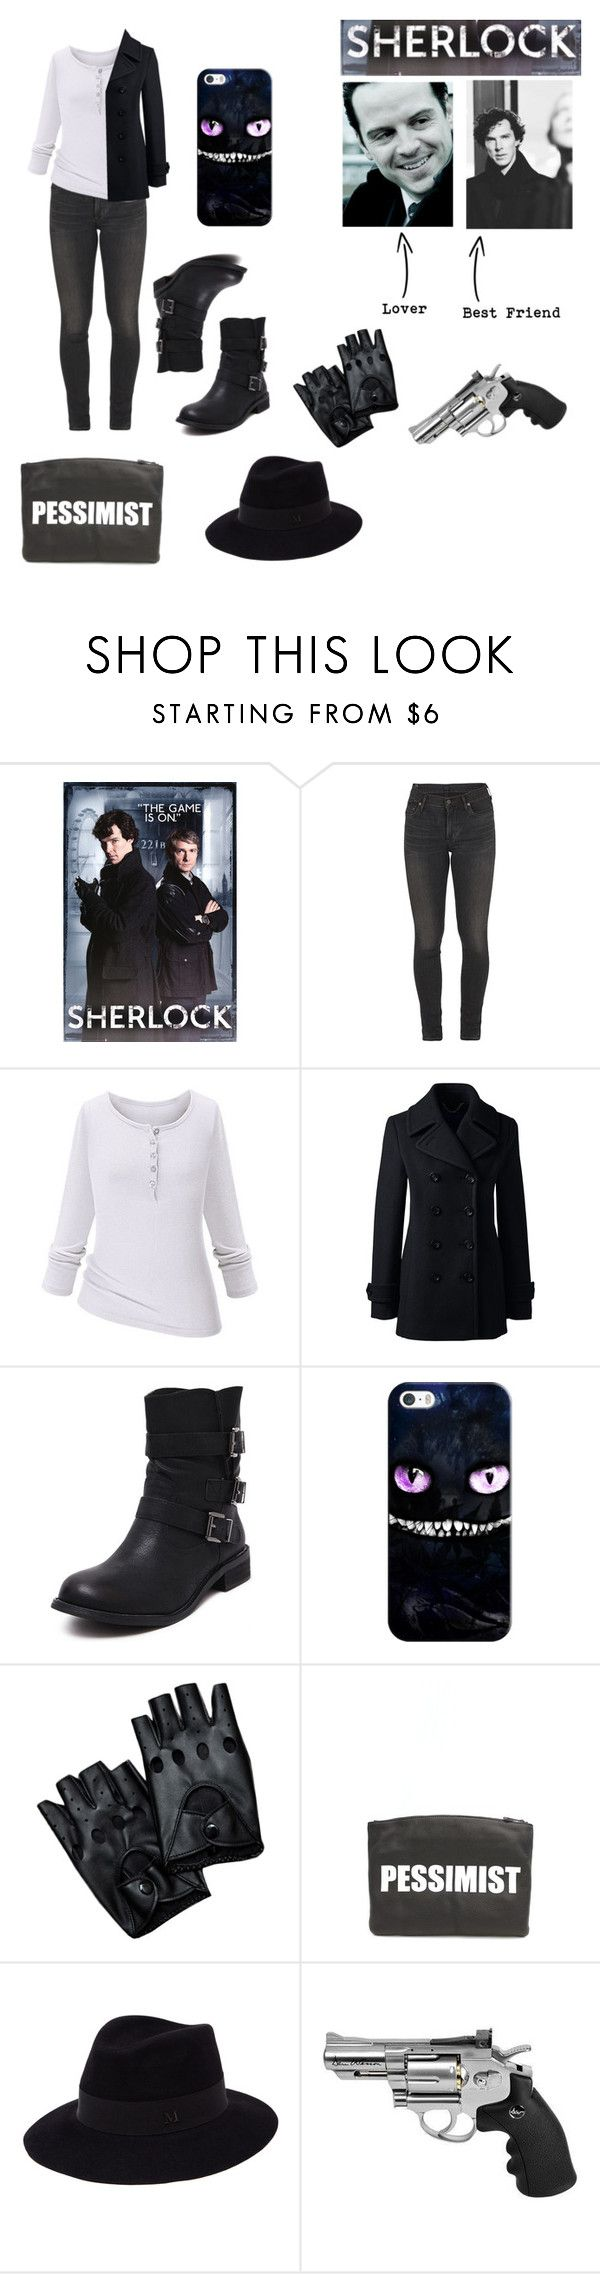 """Me in Sherlock"" by the-freak-of-nature ❤ liked on Polyvore featuring Citizens of Humanity, Lands' End, Casetify, Hayden-Harnett and Maison Michel"